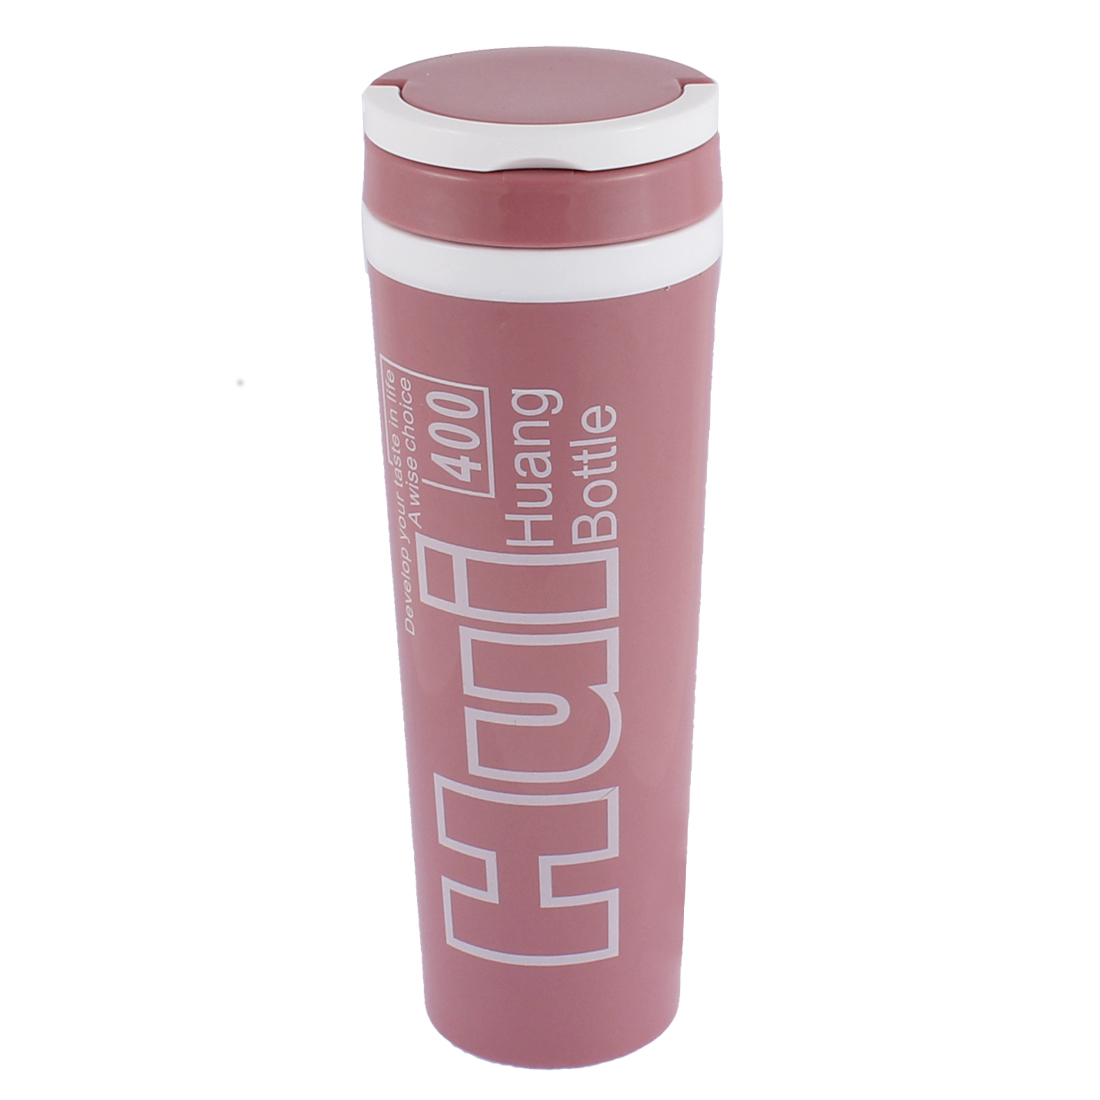 Water Letter Pattern Insulated Heat Retaining Bottle Cup Mug Vacuum Flask 400ml Light Pink